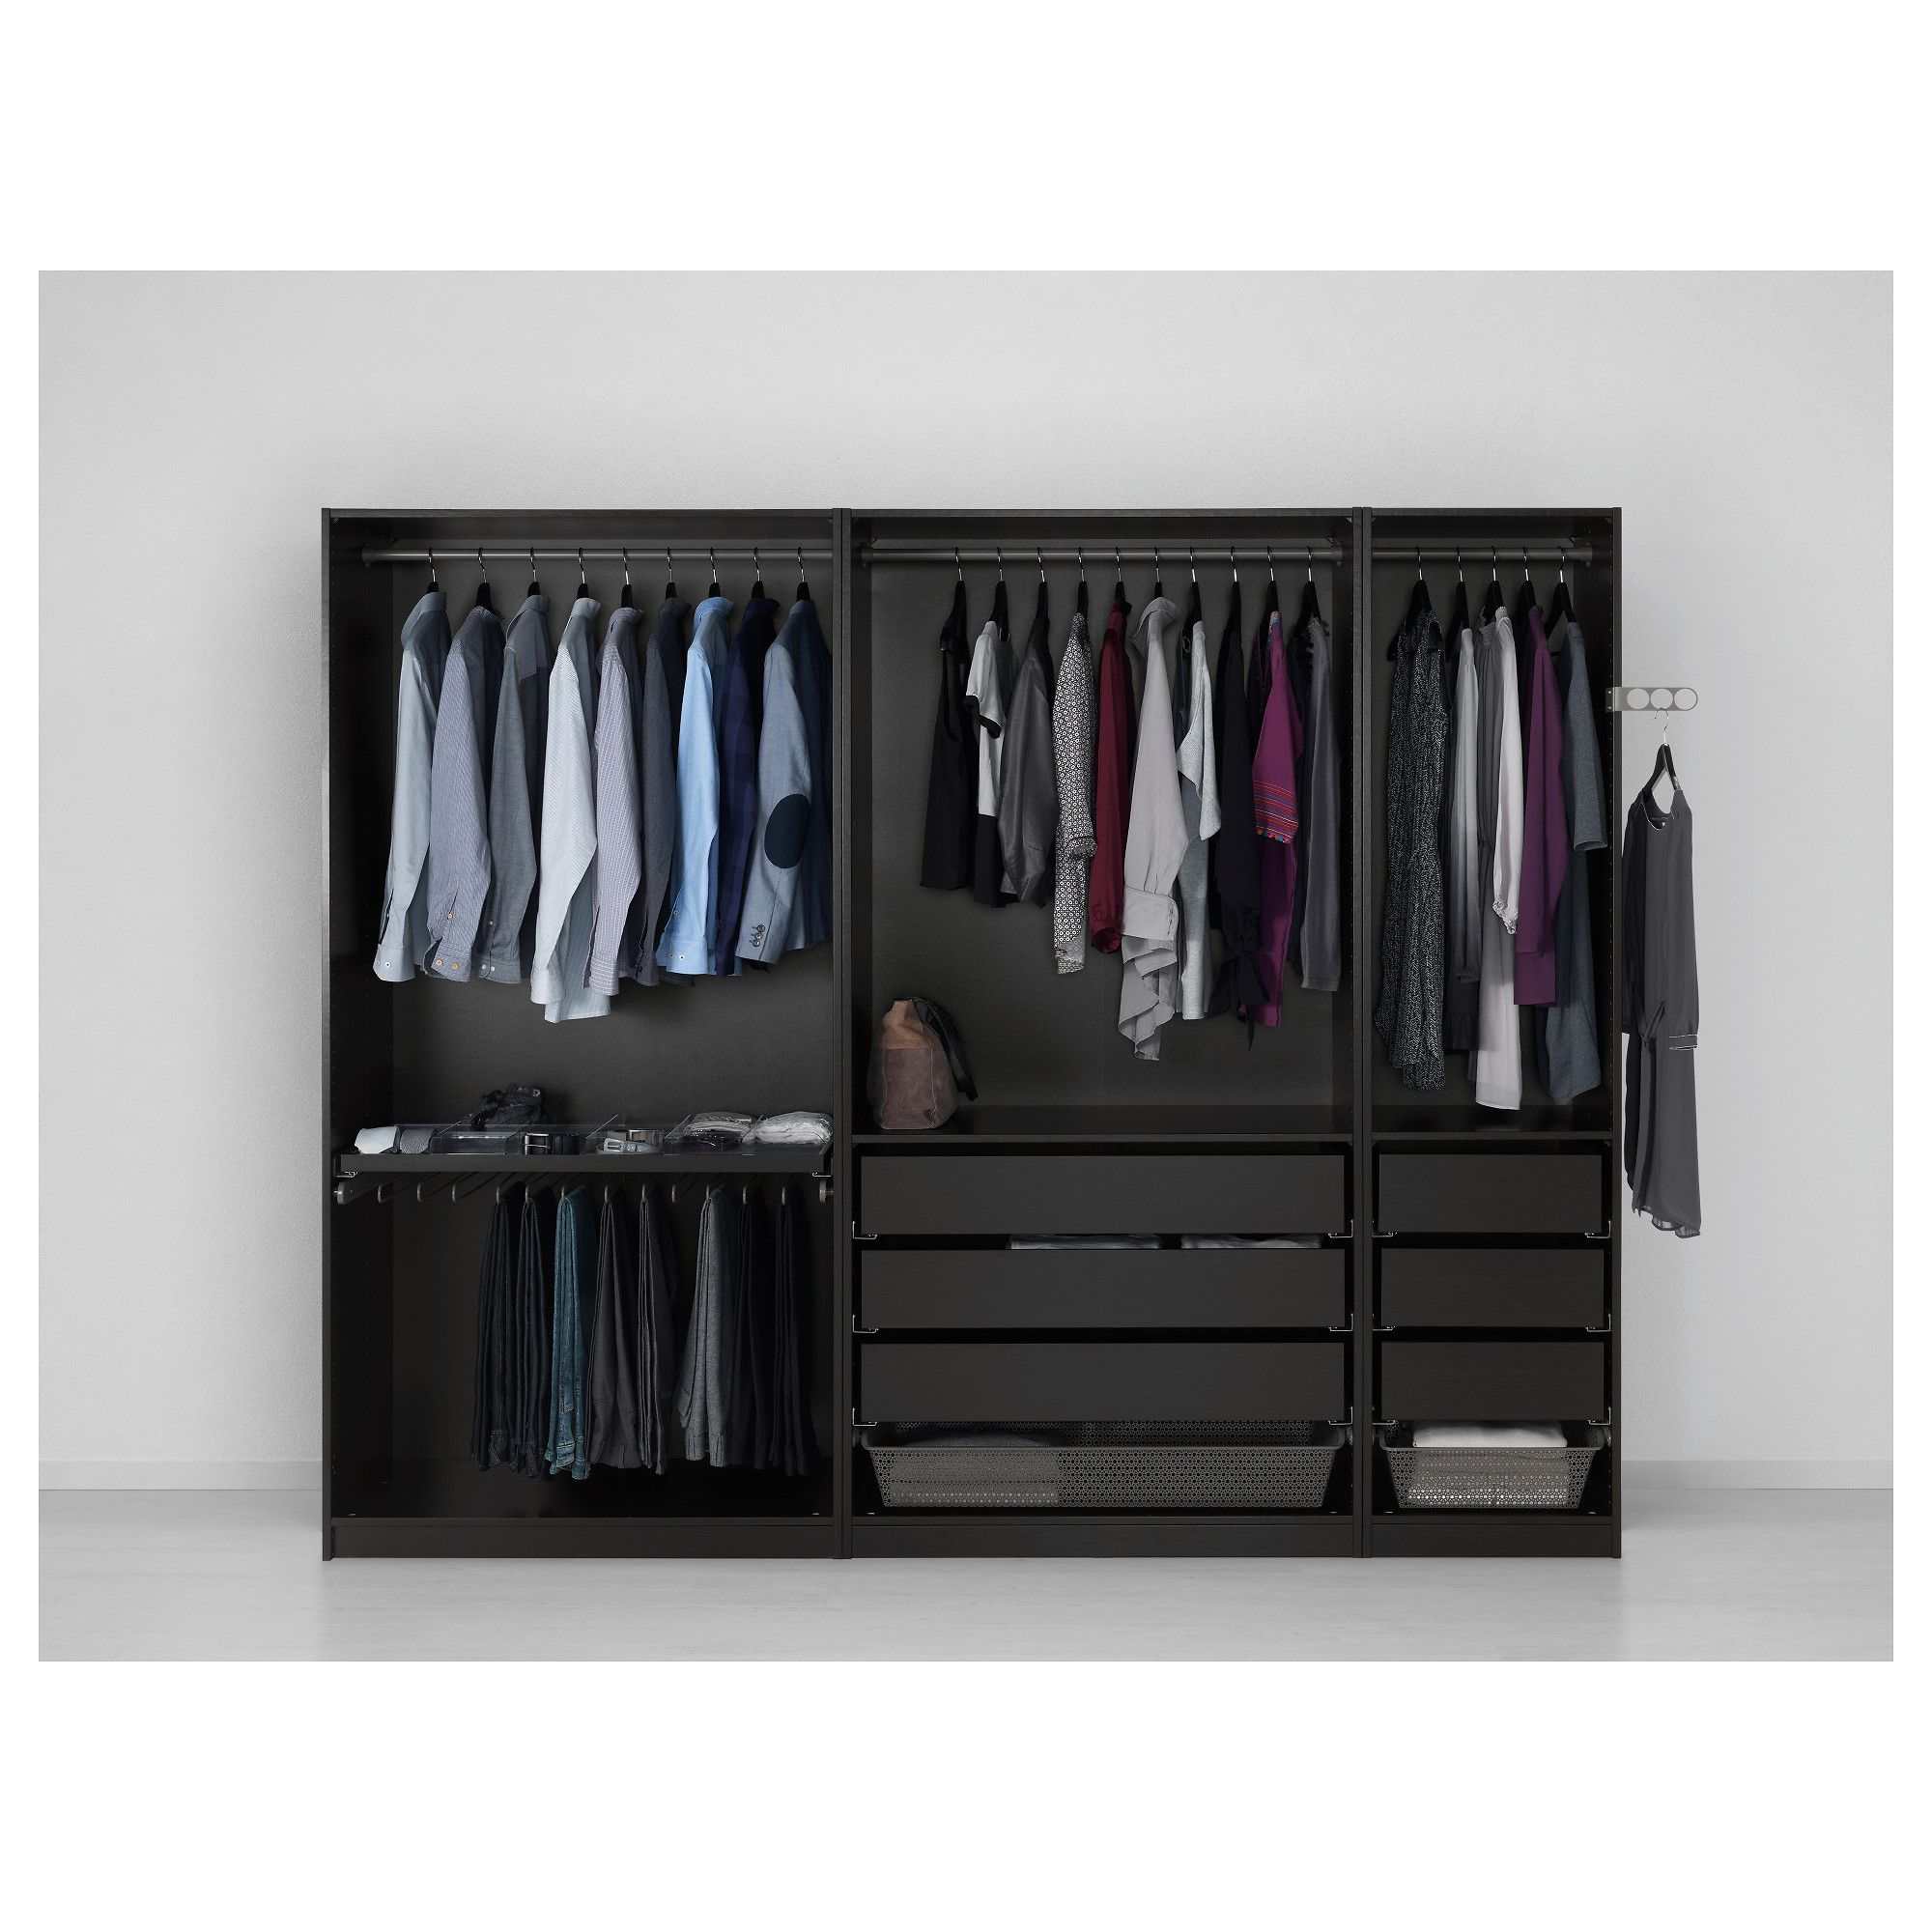 guarantee pax read gb auli wardrobe fitted black year spr terms en brochure in wardrobes ikea brown about sekken cm the products